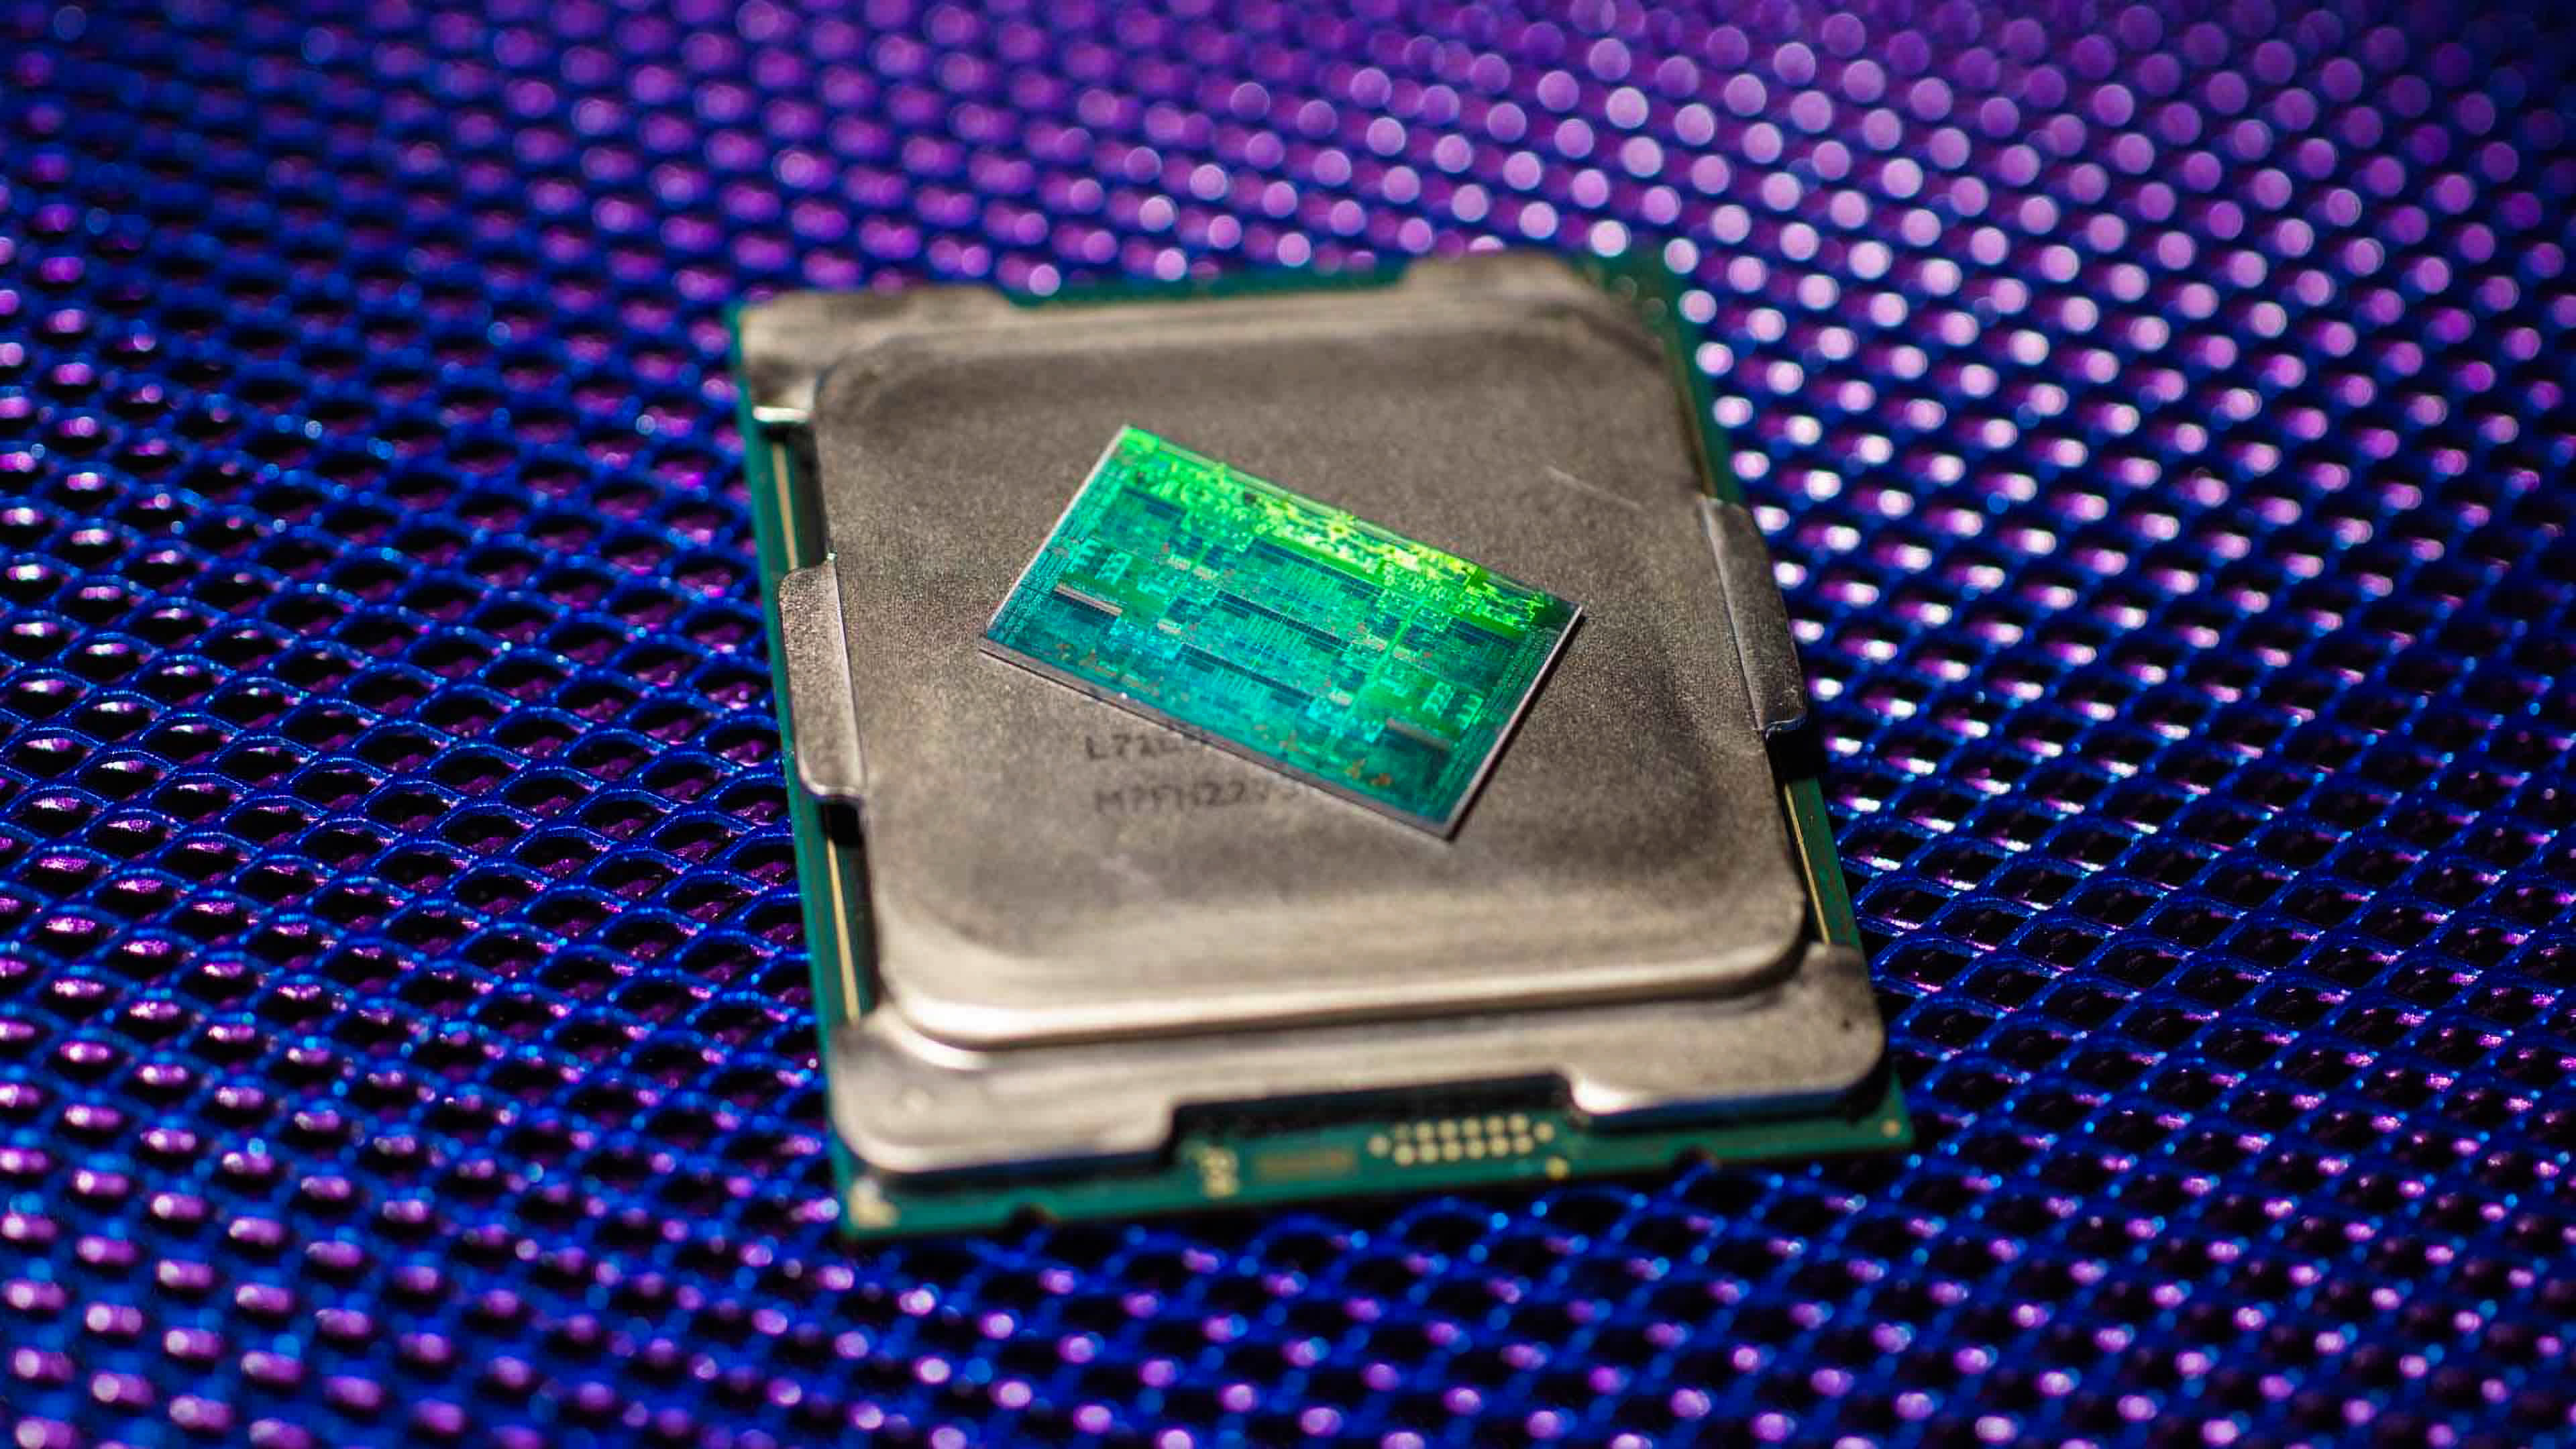 Early benchmarks show how Intel's Core i9-12900K is coming after the Ryzen 9 5950X's performance crown